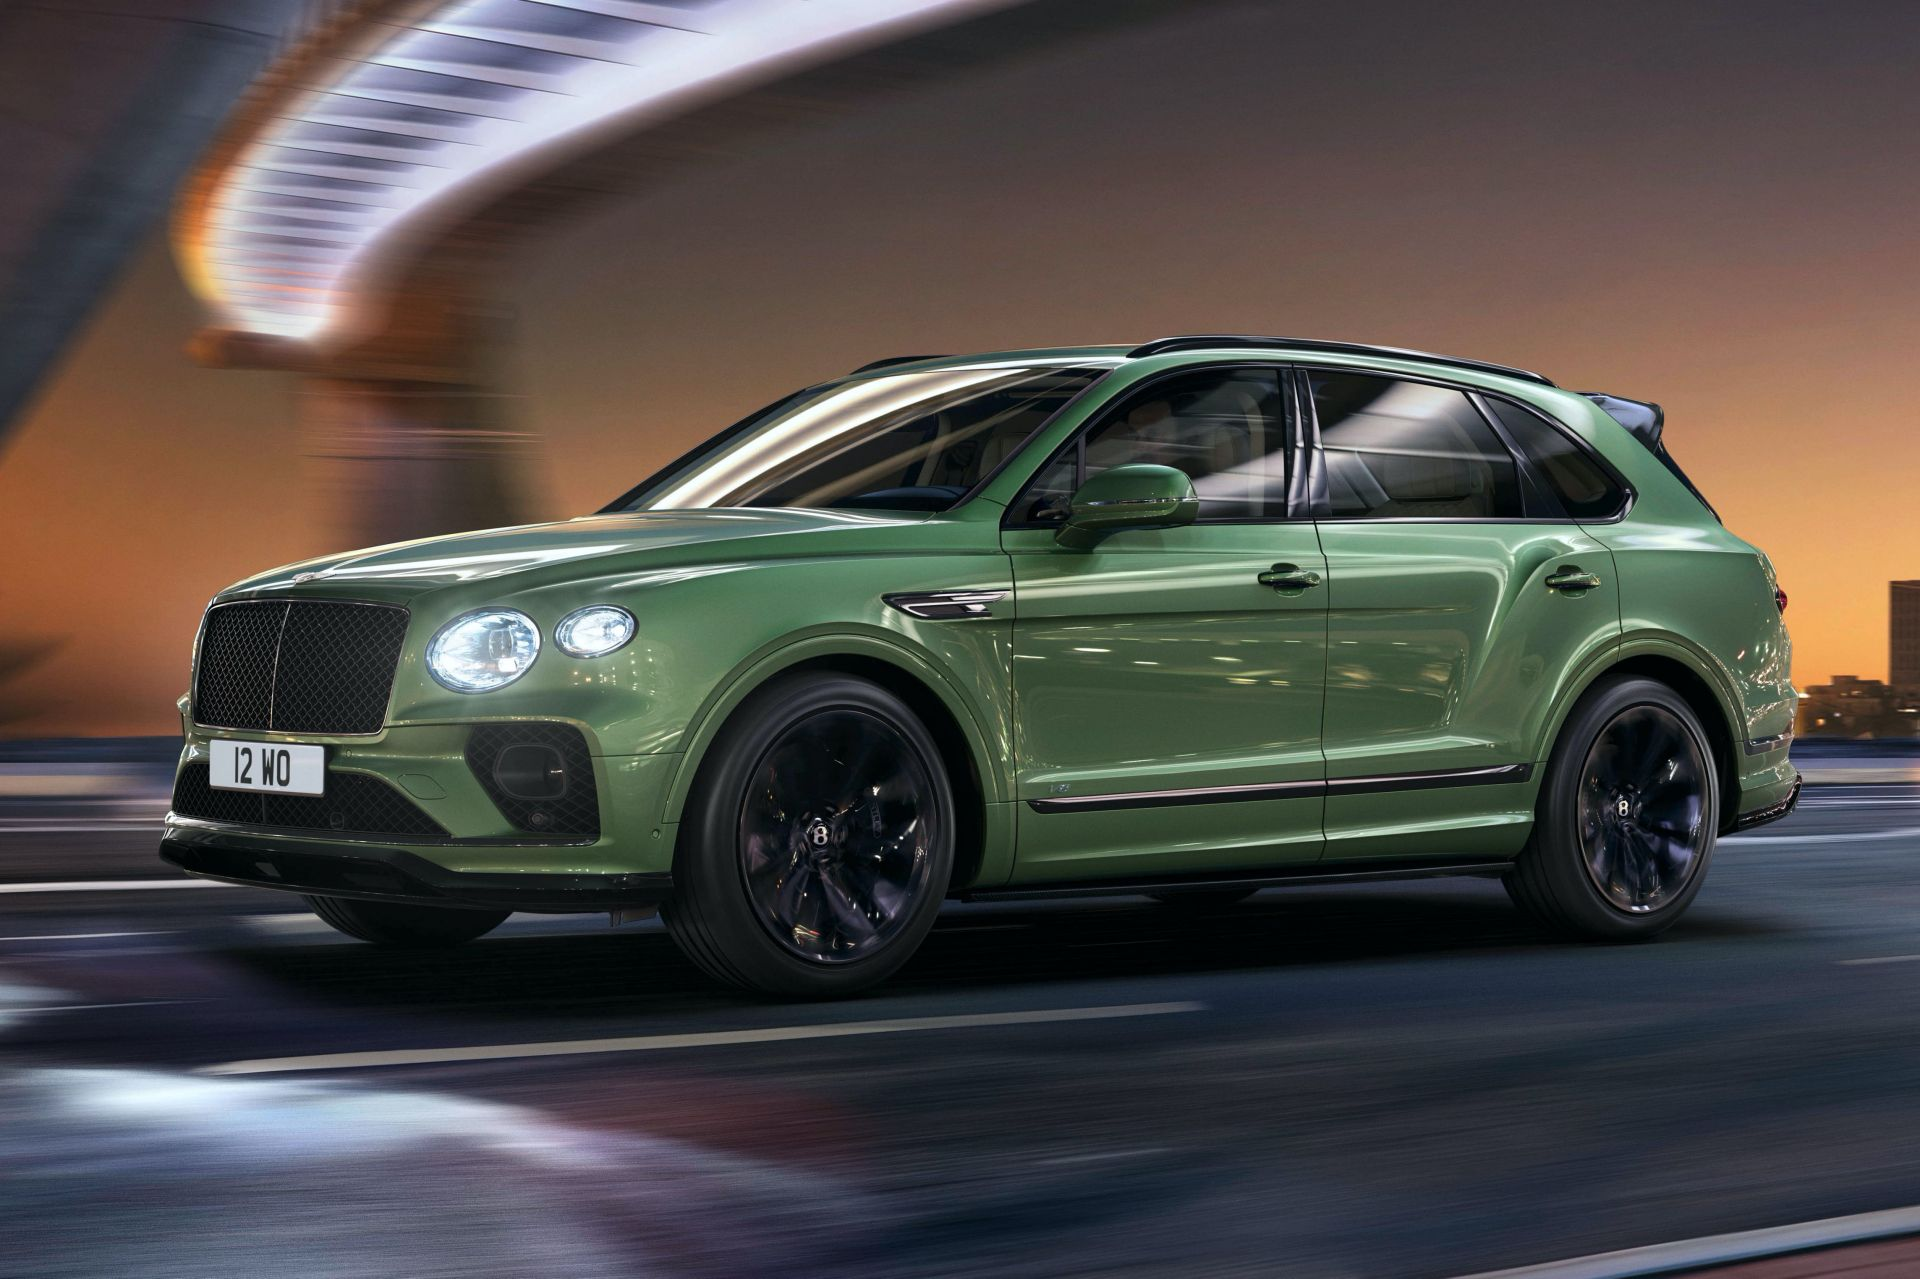 2021-bentley-bentayga-facelift-3.jpg